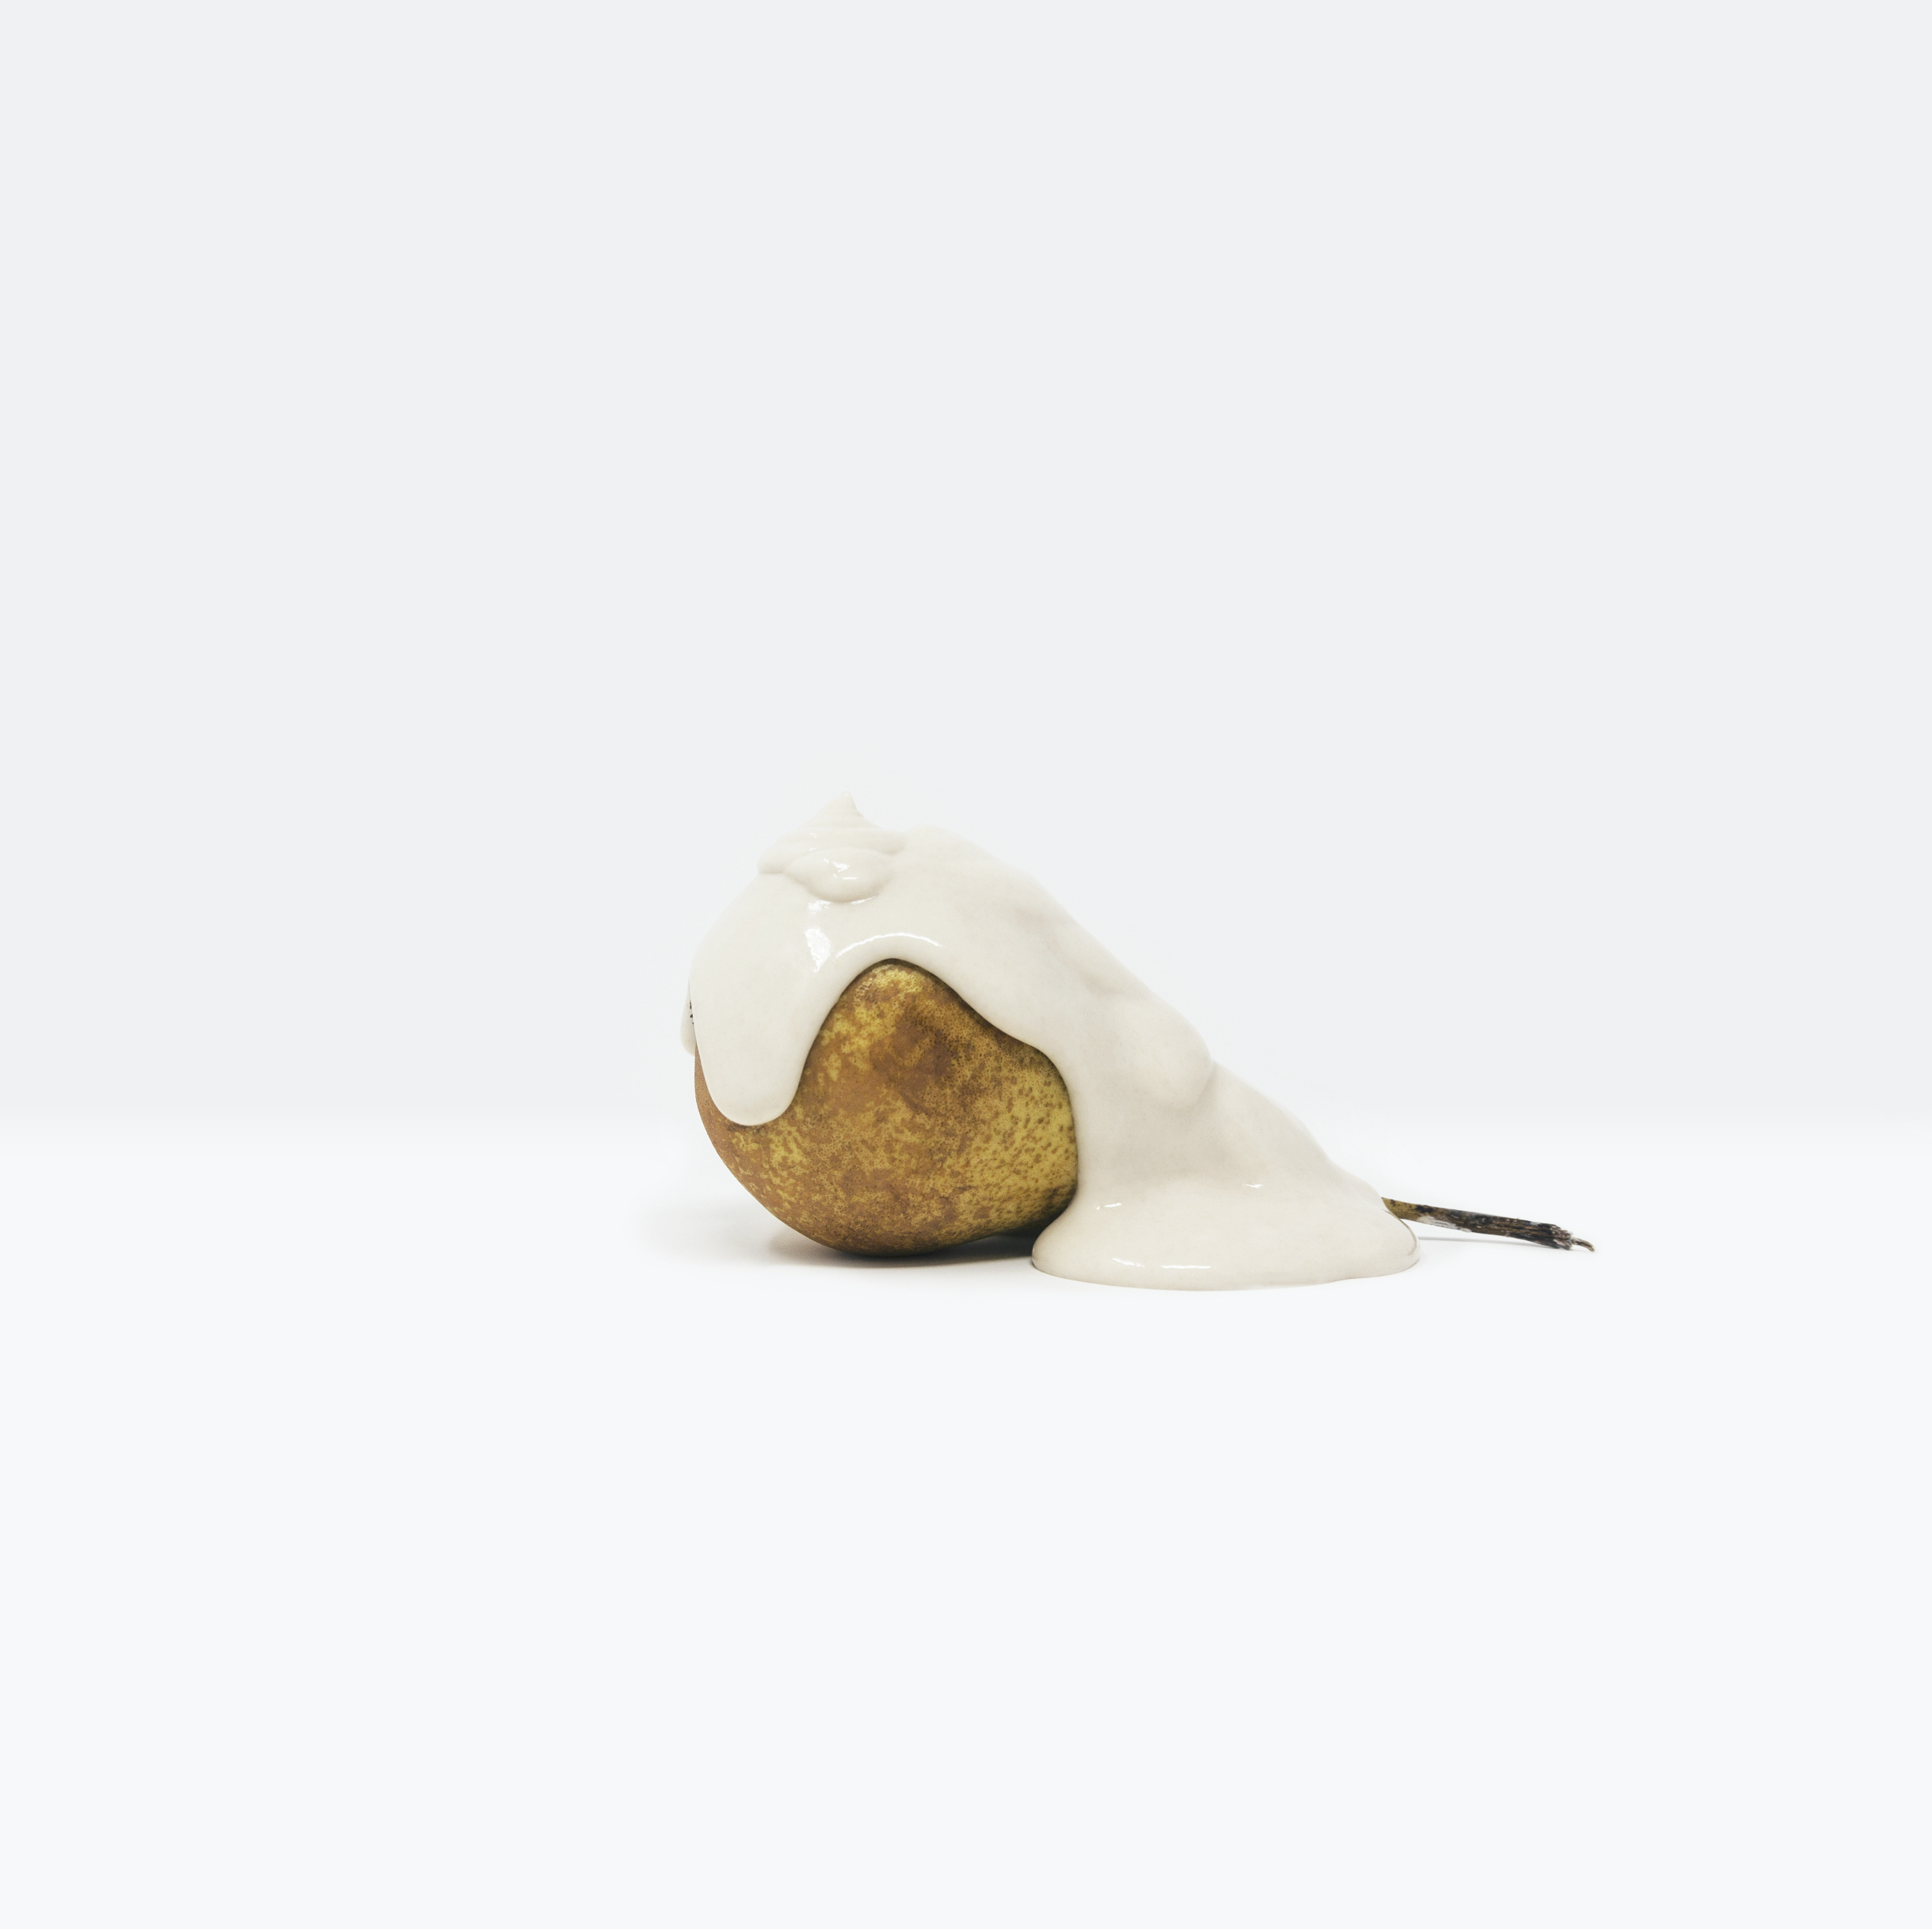 Minimalist, still life photograph of a piece of fruit covered in a paint-like substance highlighting the value of food, evoking the crucial reflection of the Global Food Crisis